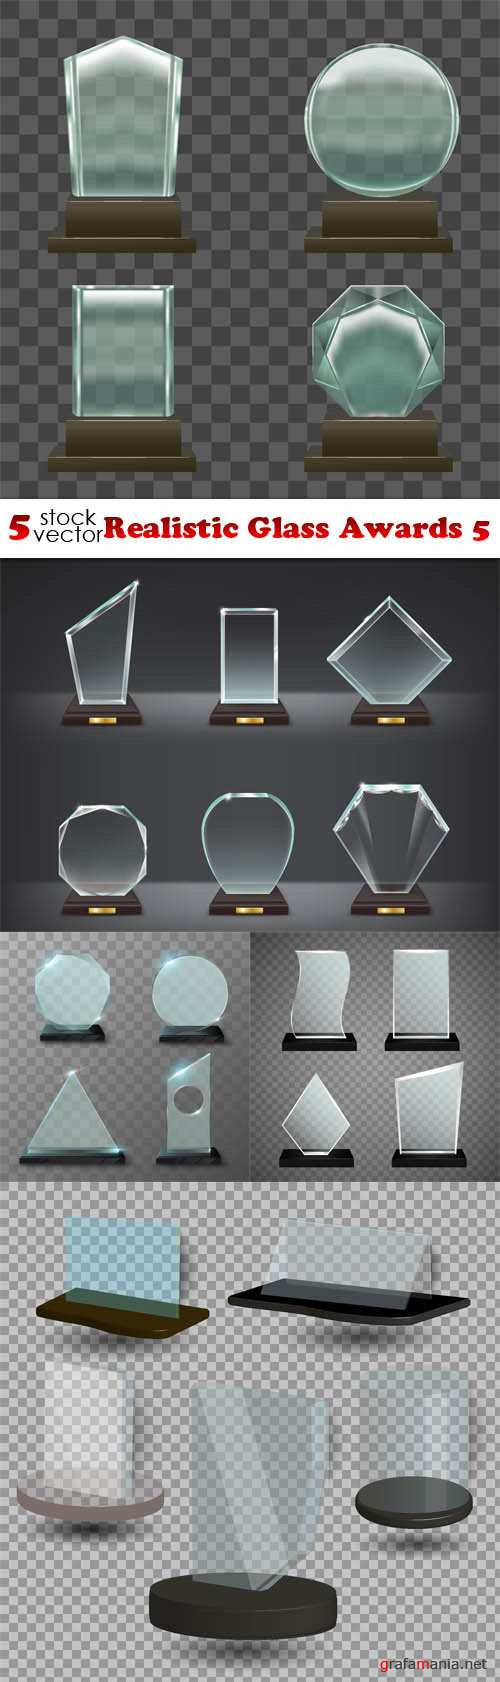 Vectors - Realistic Glass Awards 5